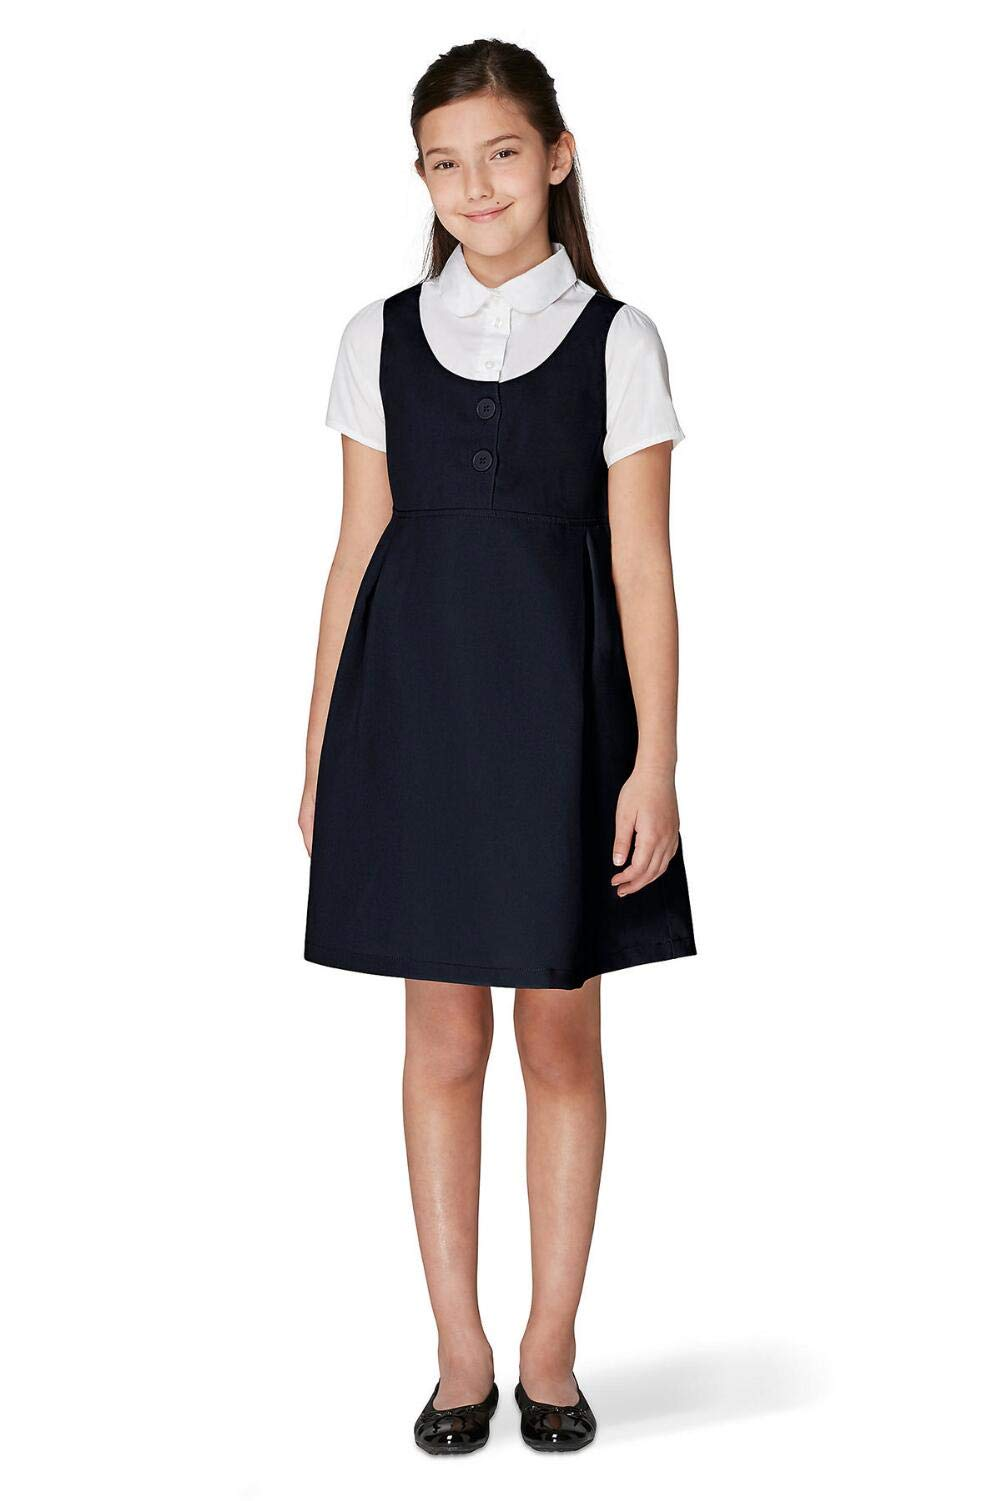 French Toast Girls' Big Peter Pan 2-fer Dress, Navy, 8